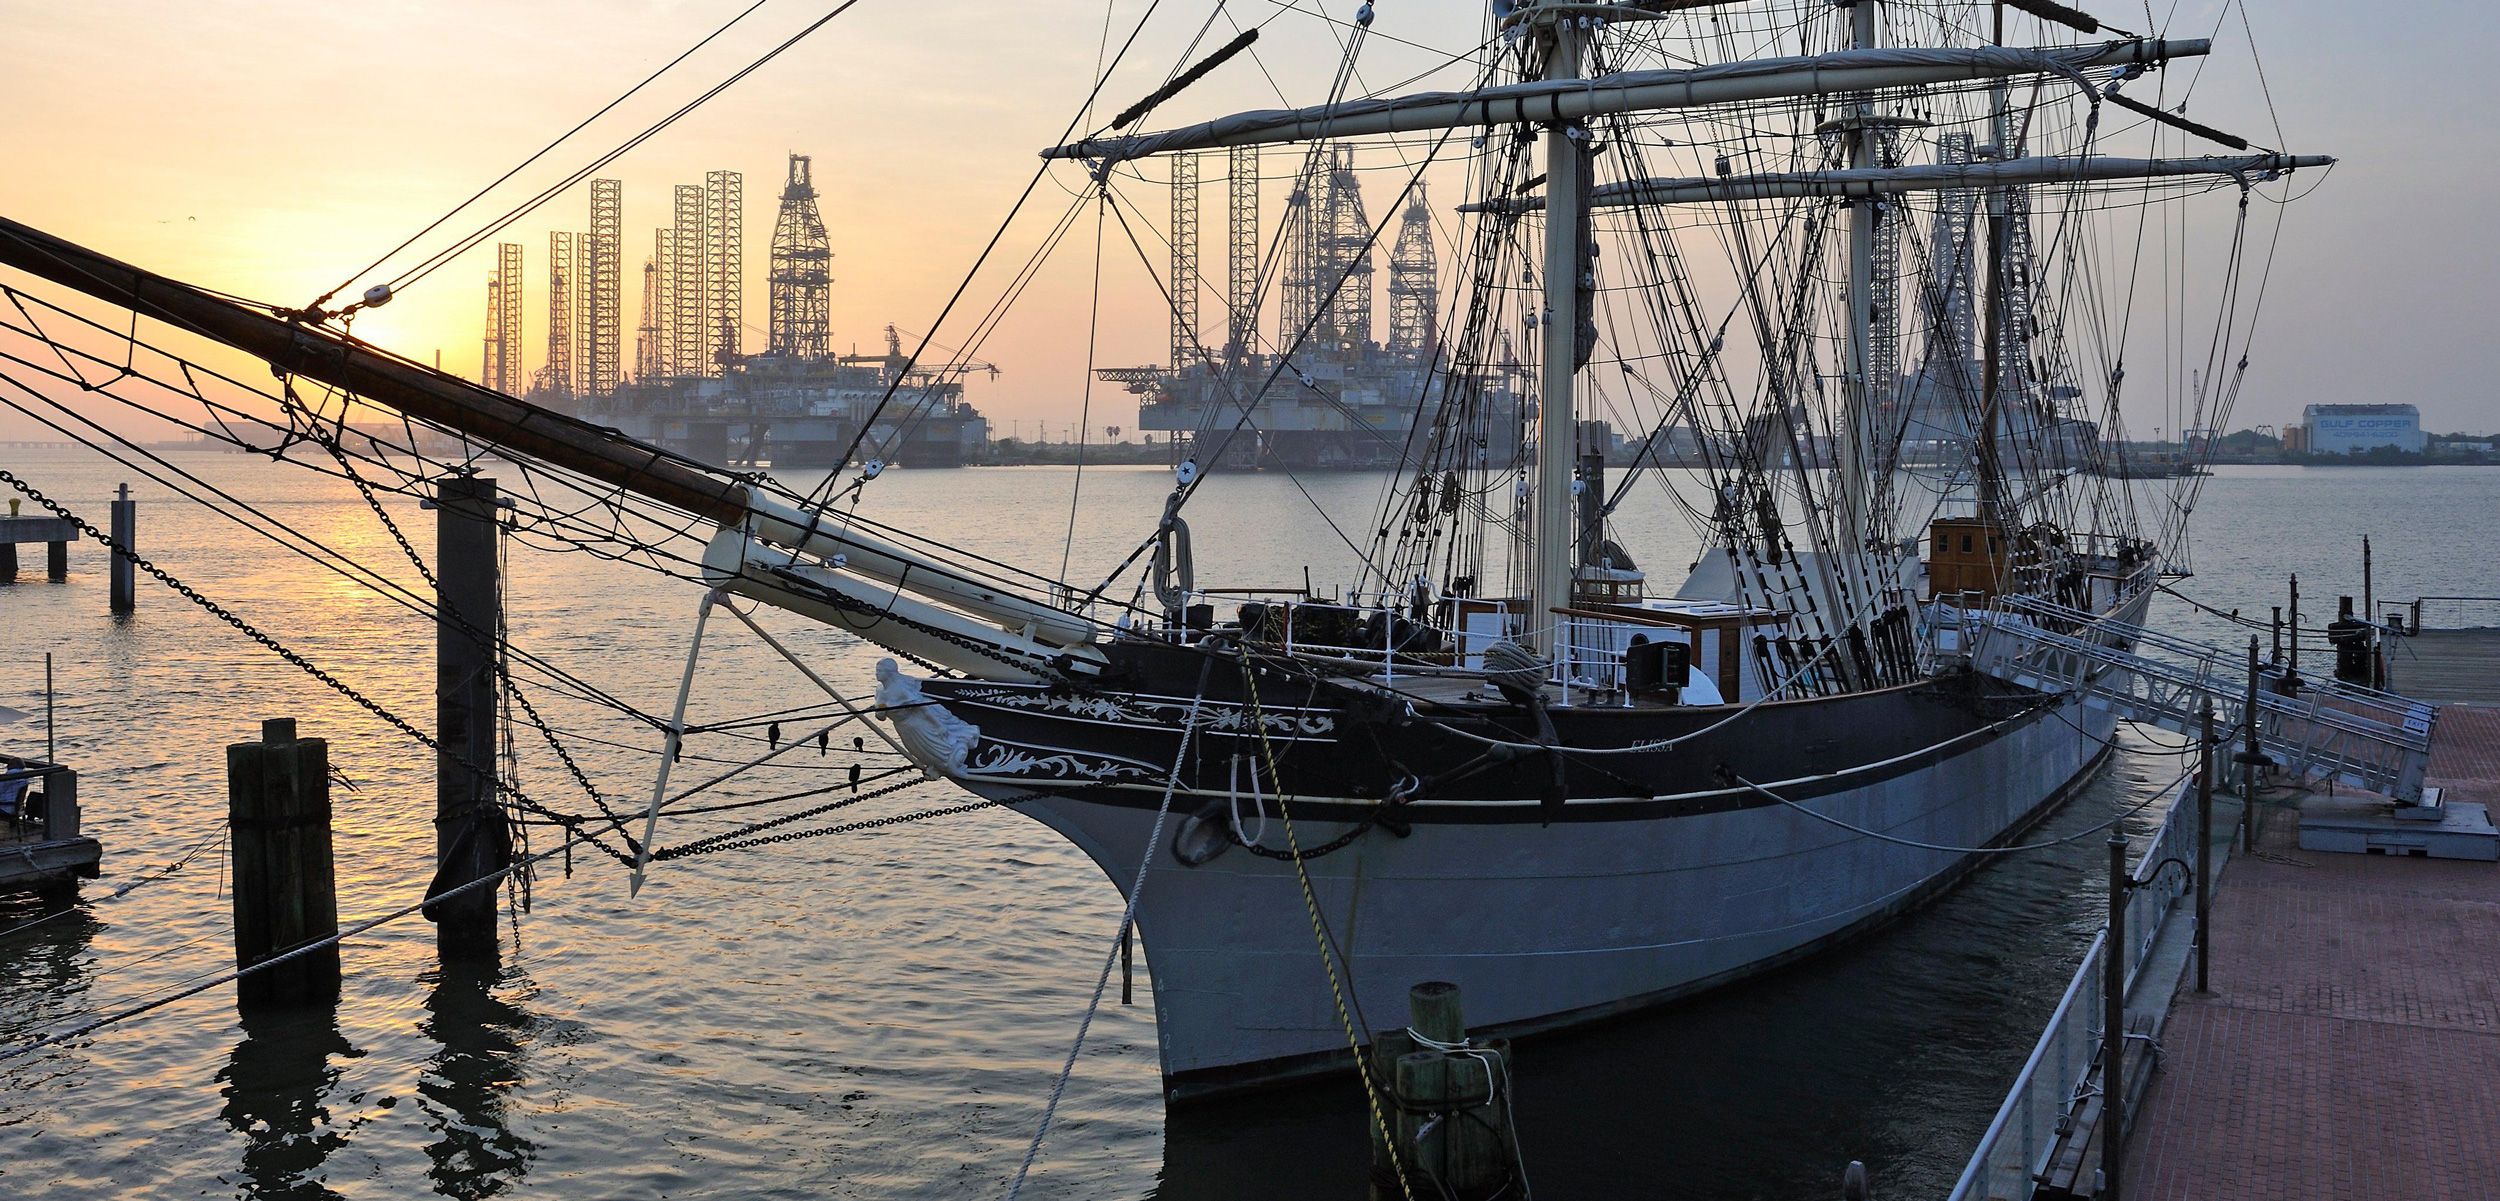 Tall ship Elissa moored in Port Galveston, Texas